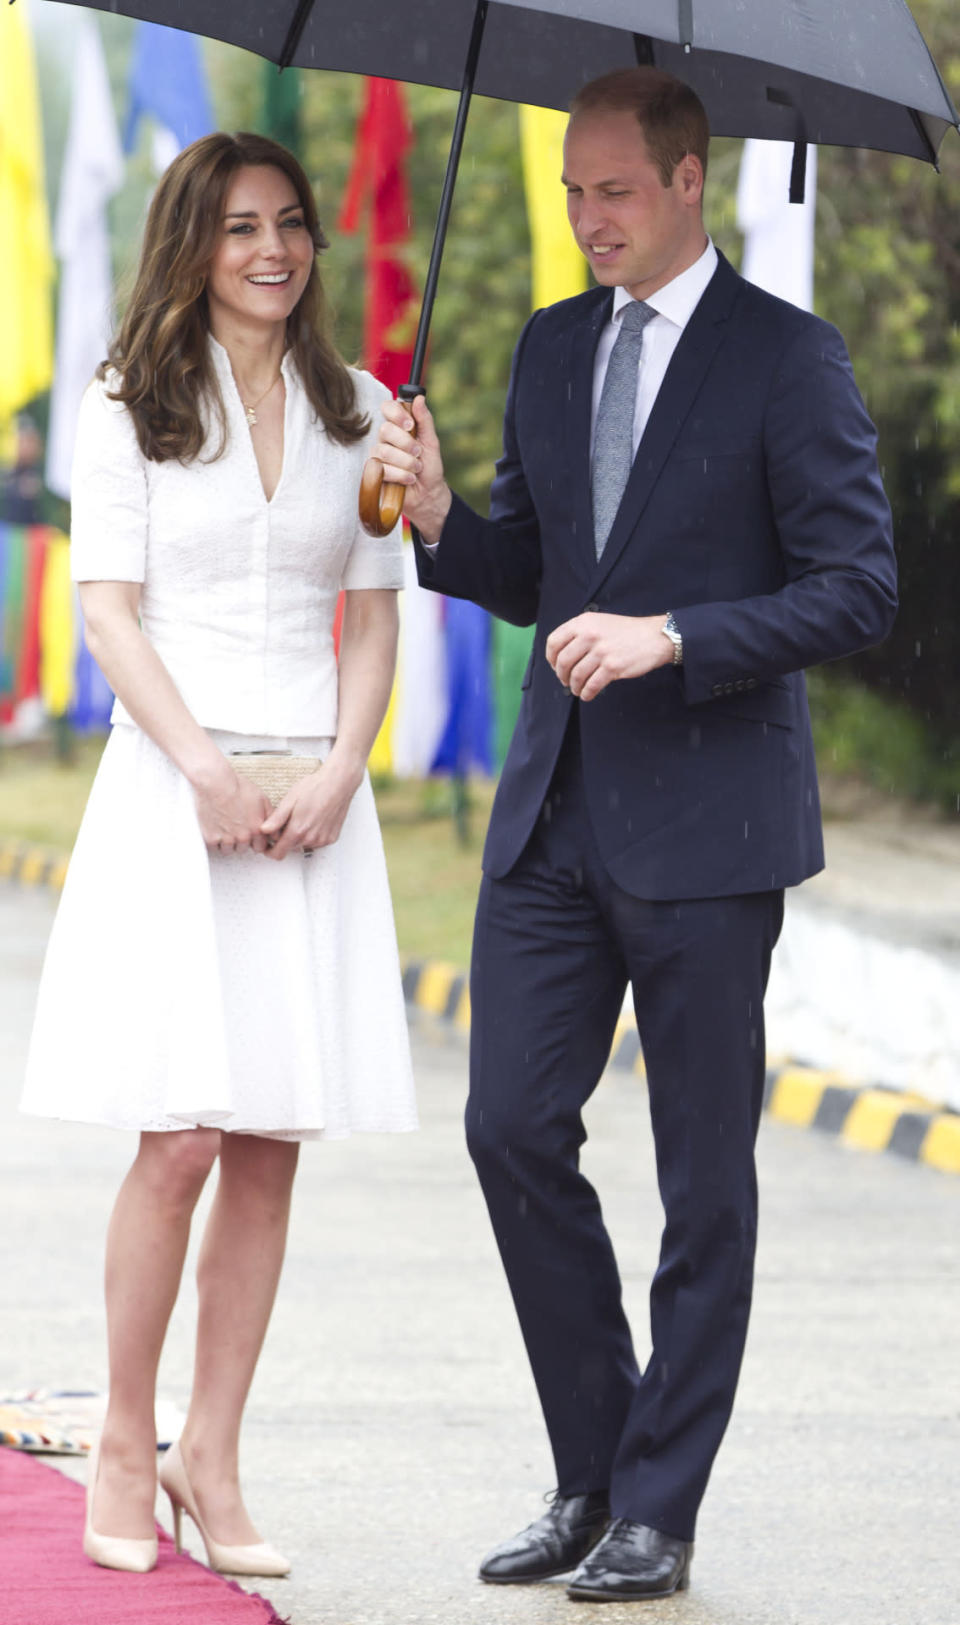 <p>As she said her goodbyes to 2016's royal tour of Bhutan, Kate was seen in a white broderie anglaise two-piece by Alexander McQueen. Unsurprisingly, the Duchess chose L.K. Bennett heels and bag to finish. </p><p><i>[Photo: PA]</i></p>